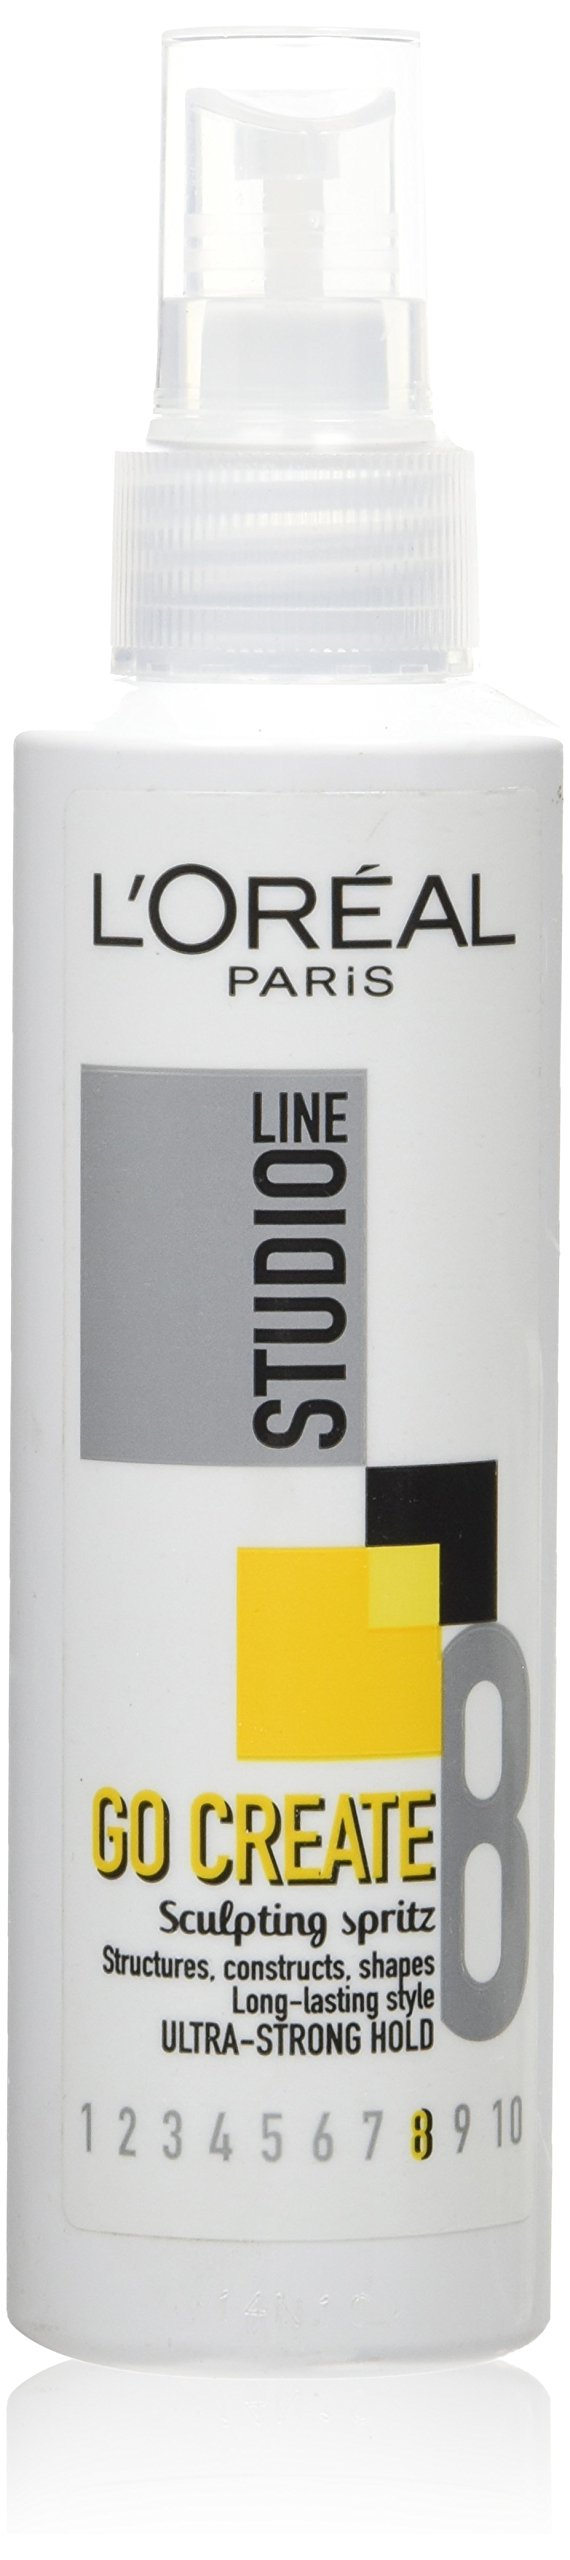 L'Oreal Studio Line Go Create Sculpting Hair Spritz 150ml